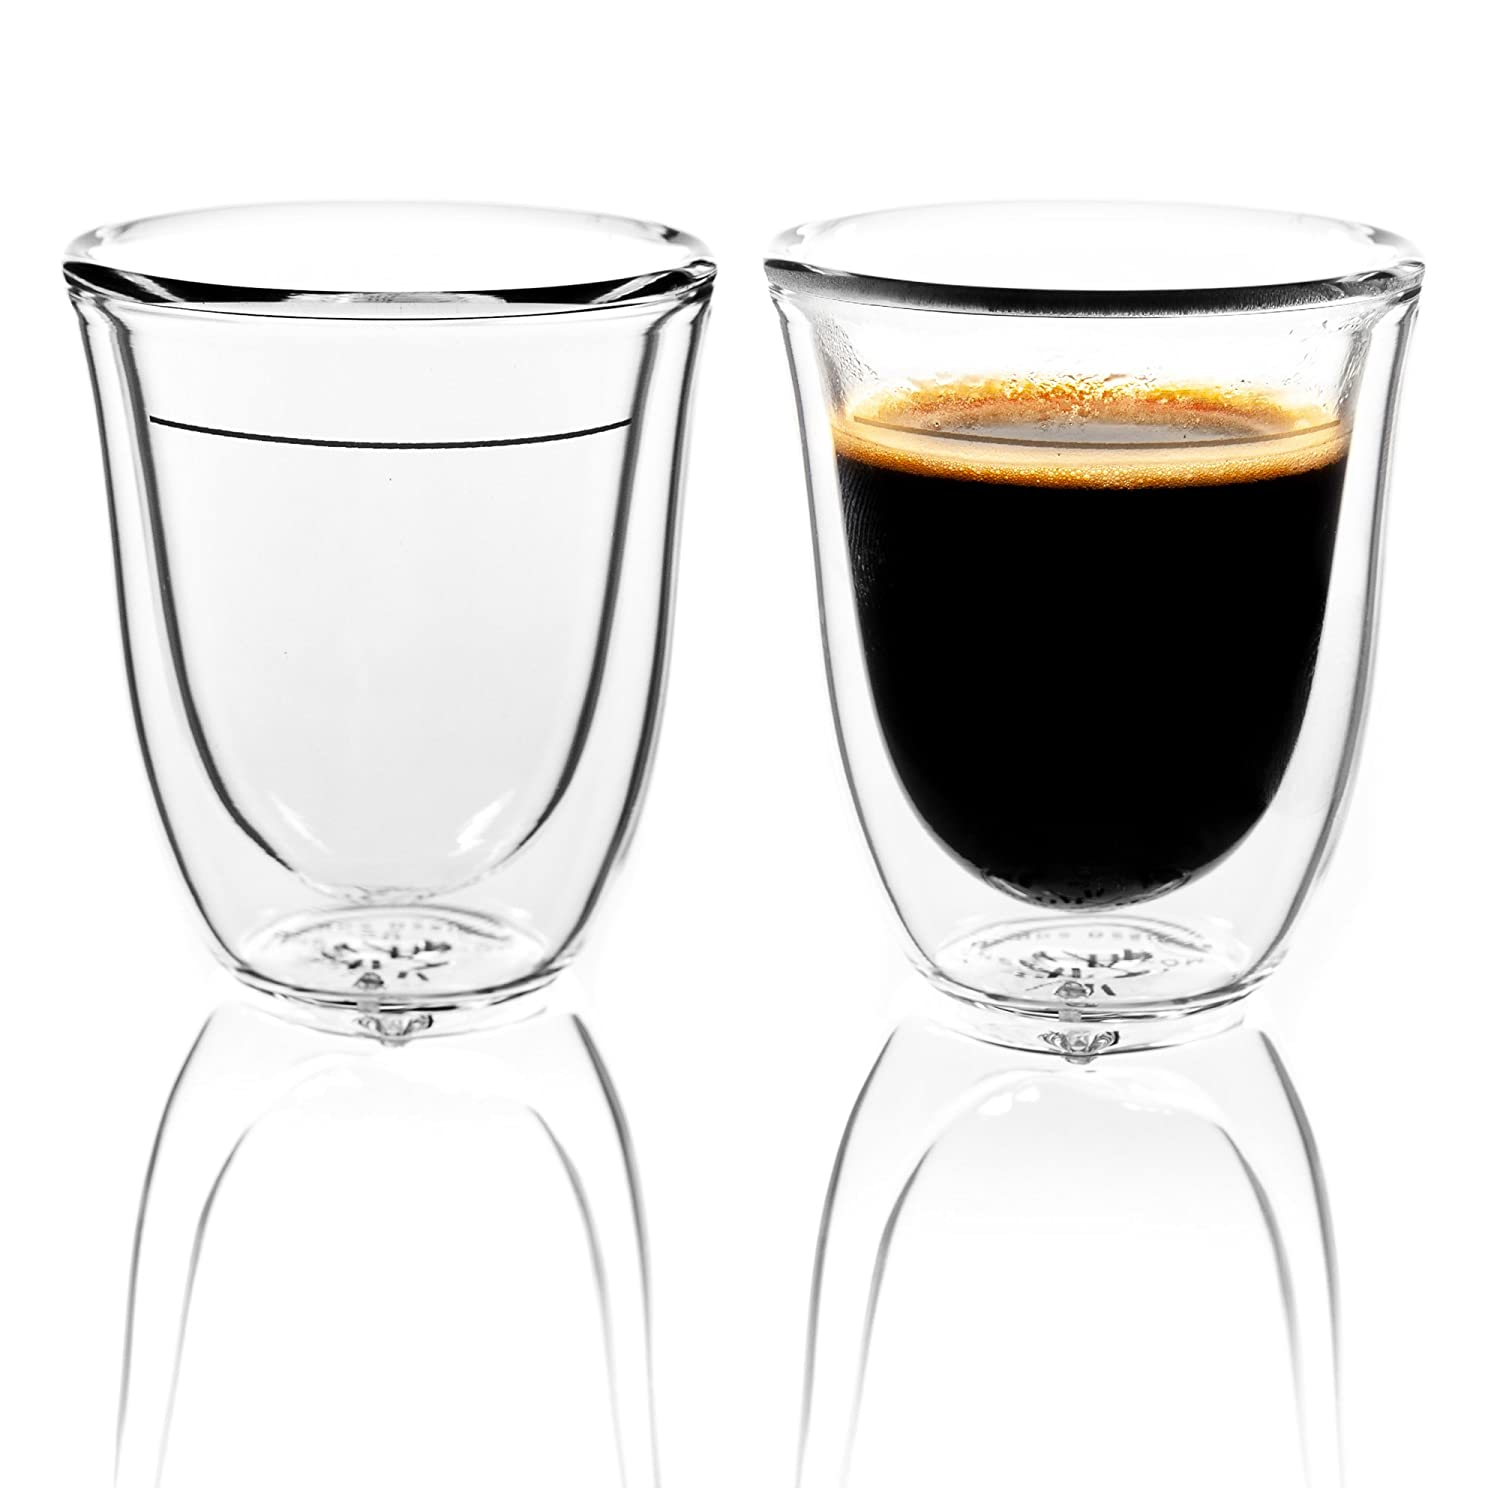 Amazoncom - Premium Thicker Glass Double Wall Espresso Cups Insulated